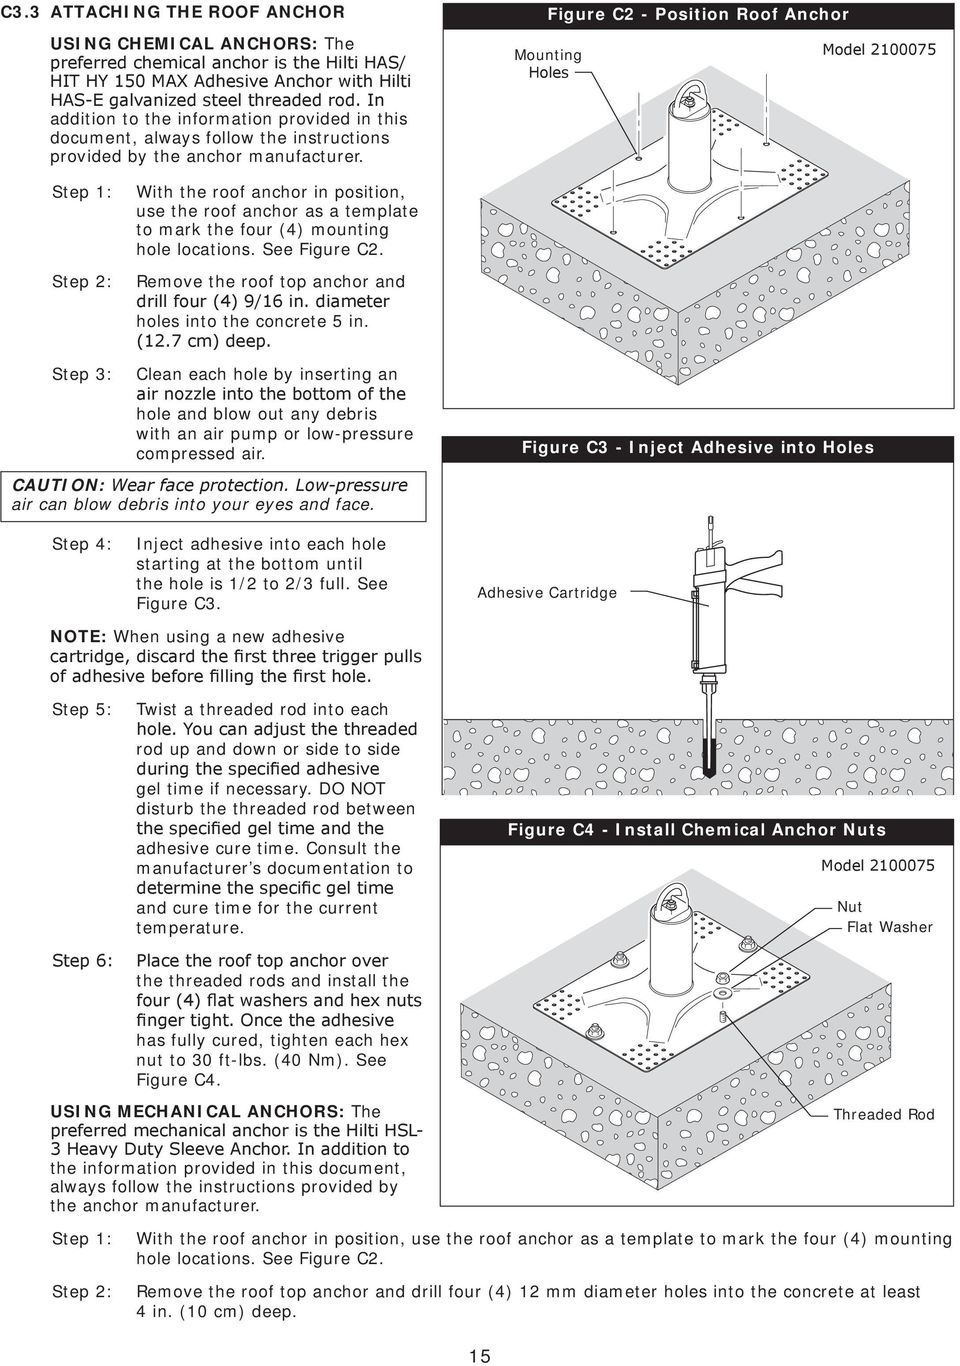 Figure C2 - Position Roof Anchor Mounting Holes Model 2100075 Step 1: Step 2: With the roof anchor in position, use the roof anchor as a template to mark the four (4) mounting hole locations.